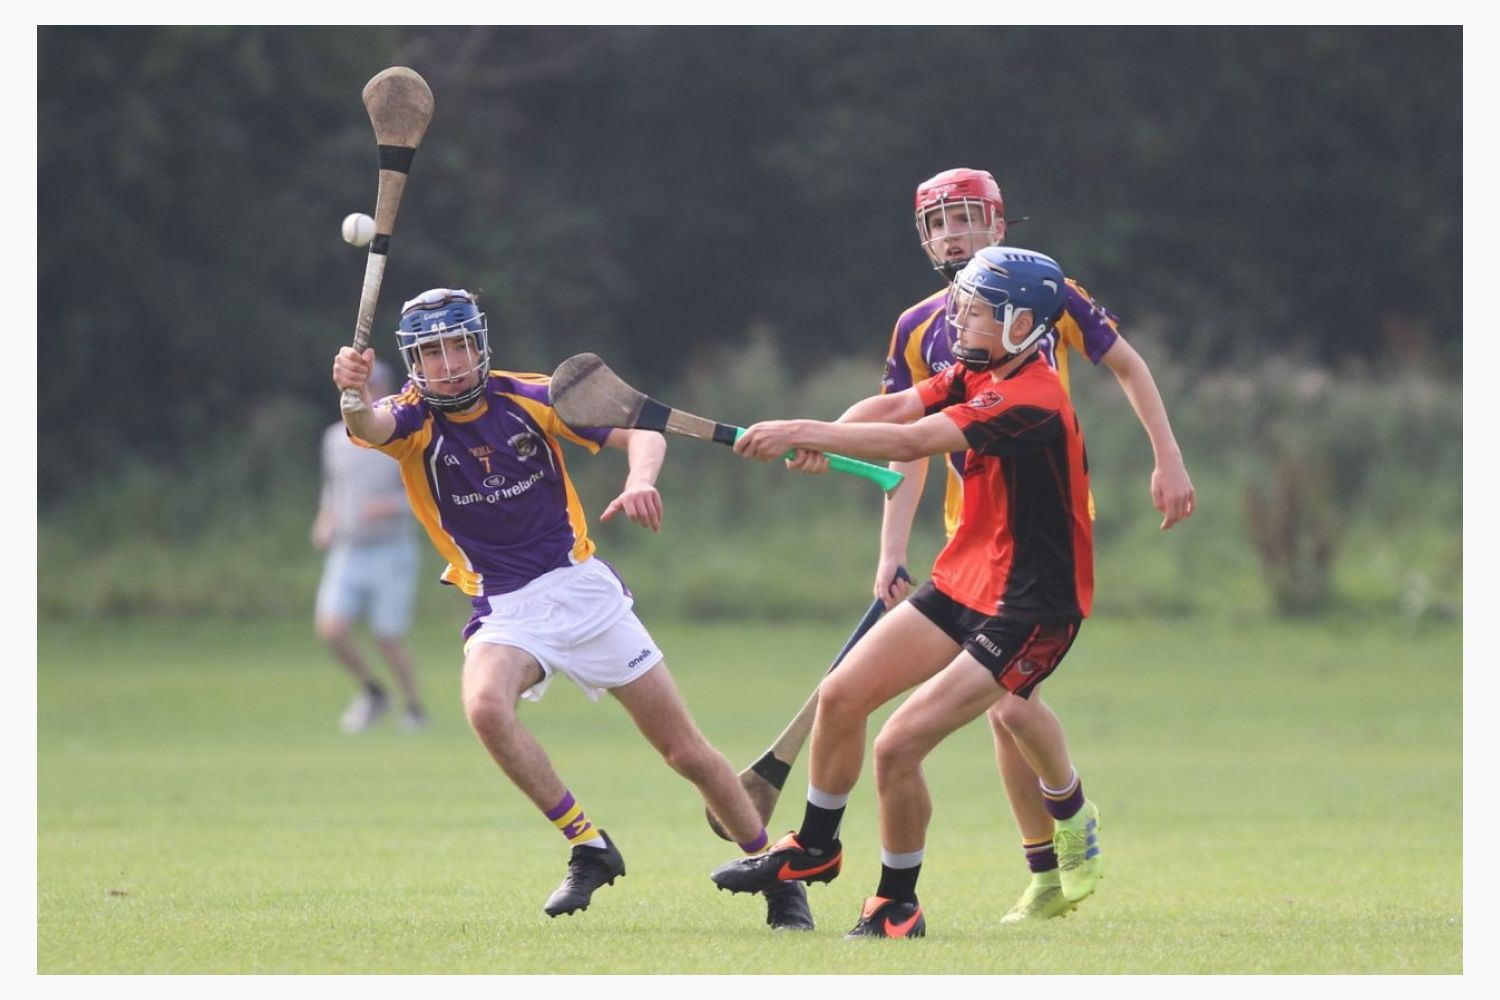 U16A hurlers secure win over Balinteer St Johns